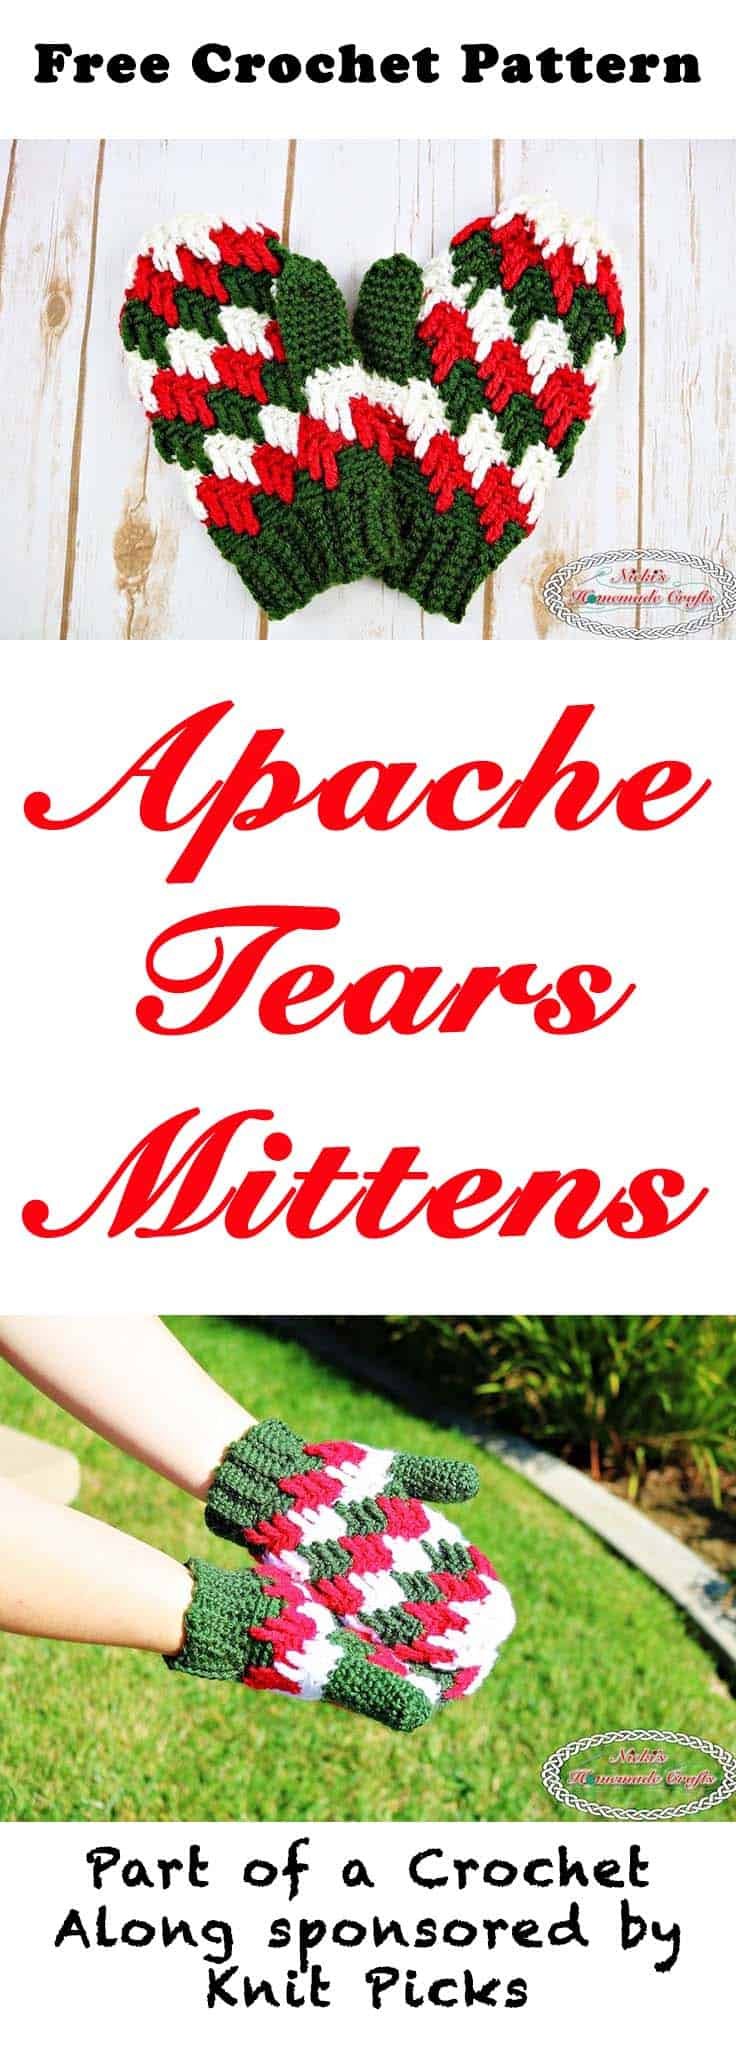 Apache Tears Mittens - Free Crochet Pattern - Crochet Along by Nicki's Homemade Crafts #crochet #freecrochetpattern #mittens #gloves #apachetears #crochetalong #knitpicks